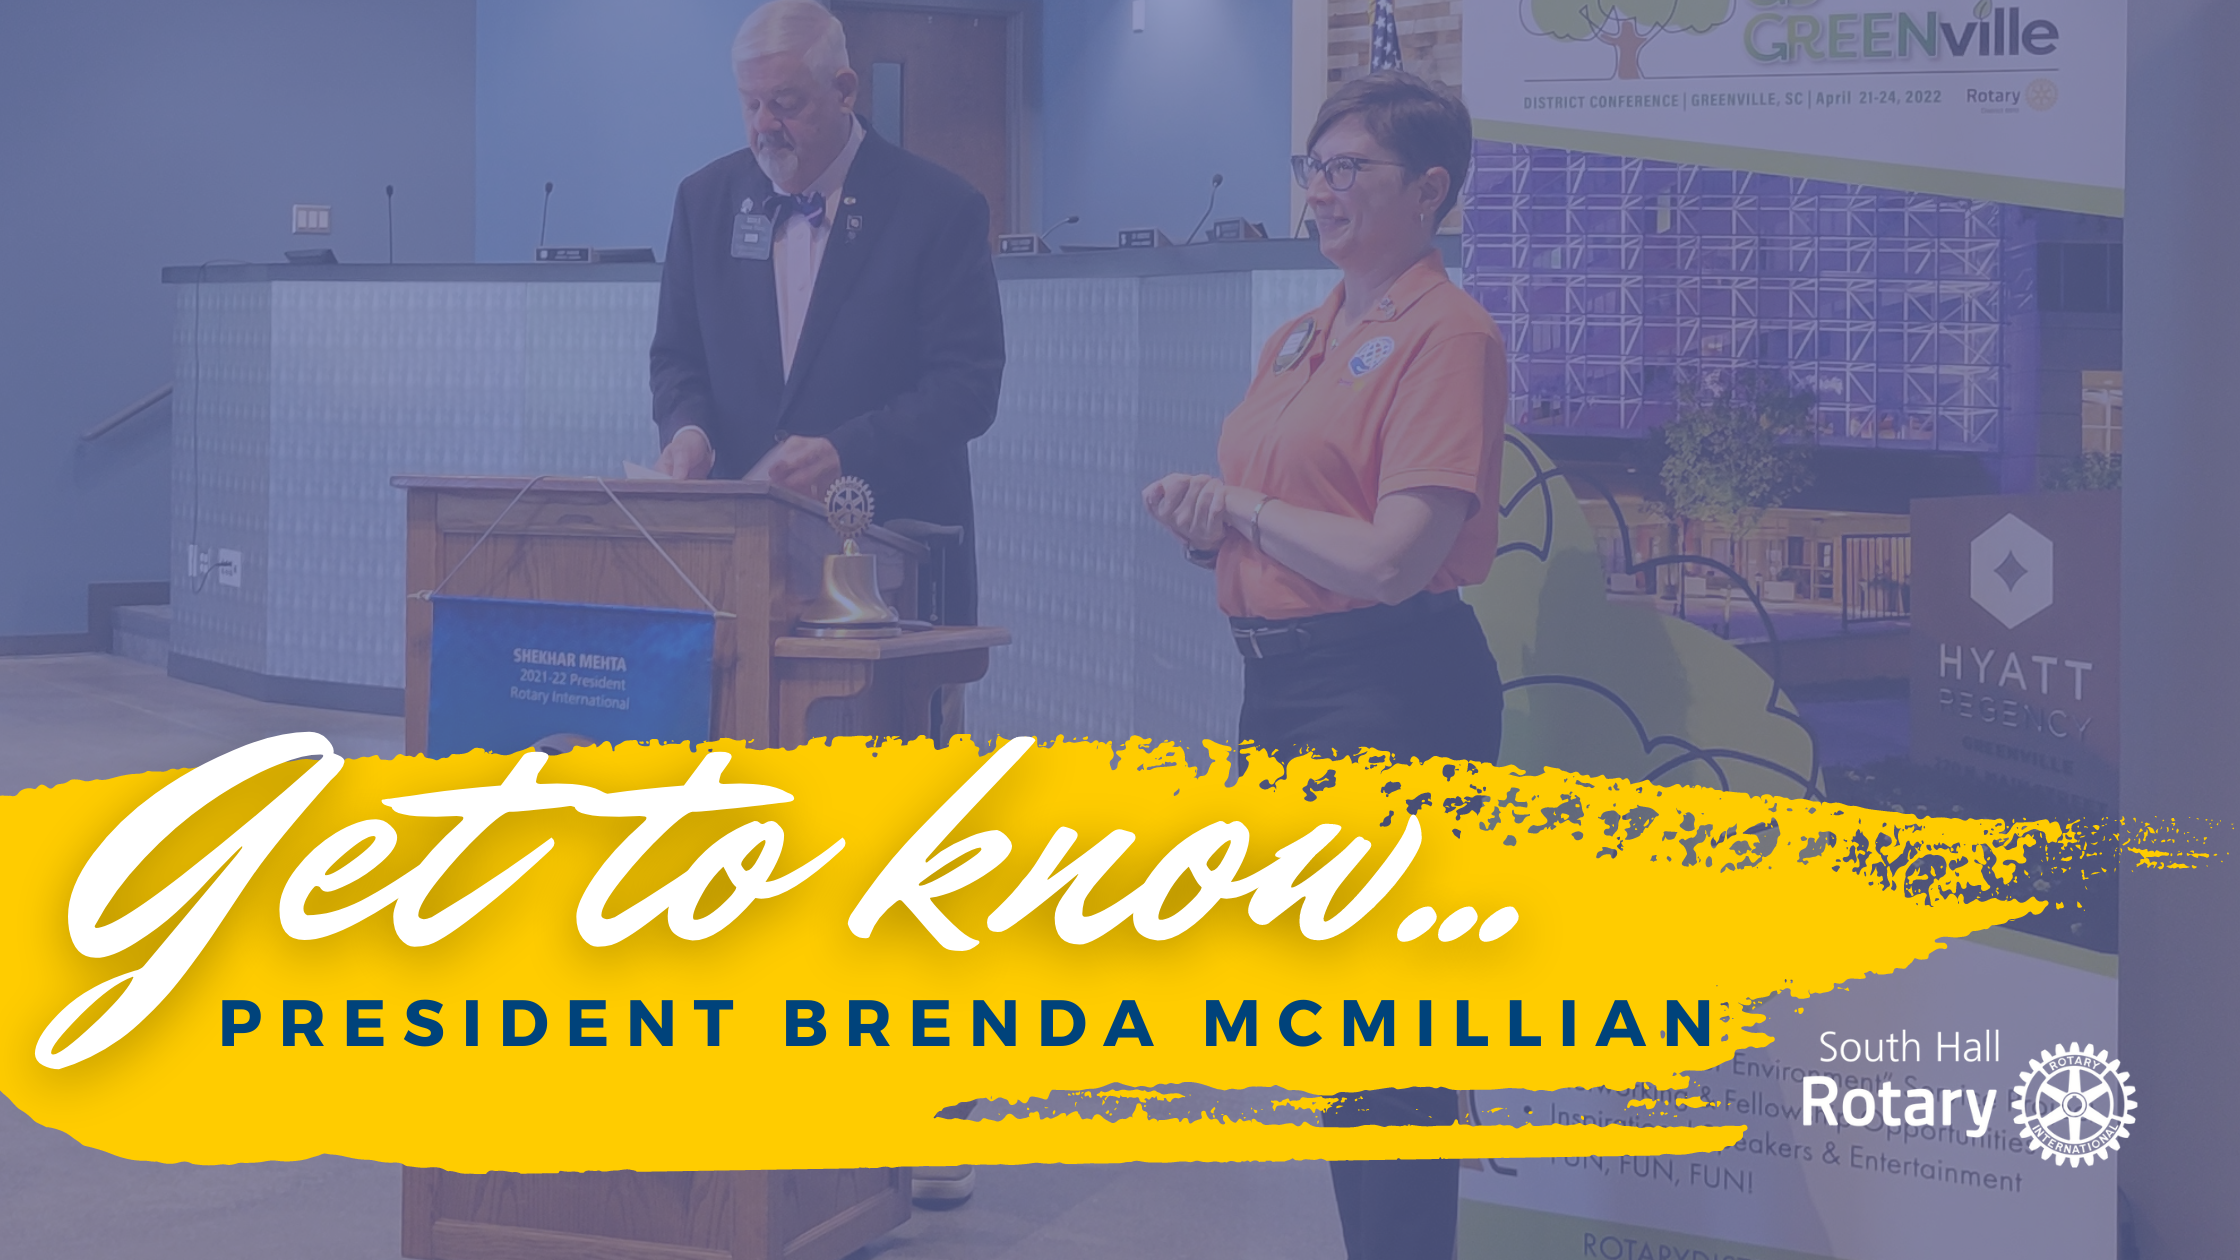 Get to know Brenda